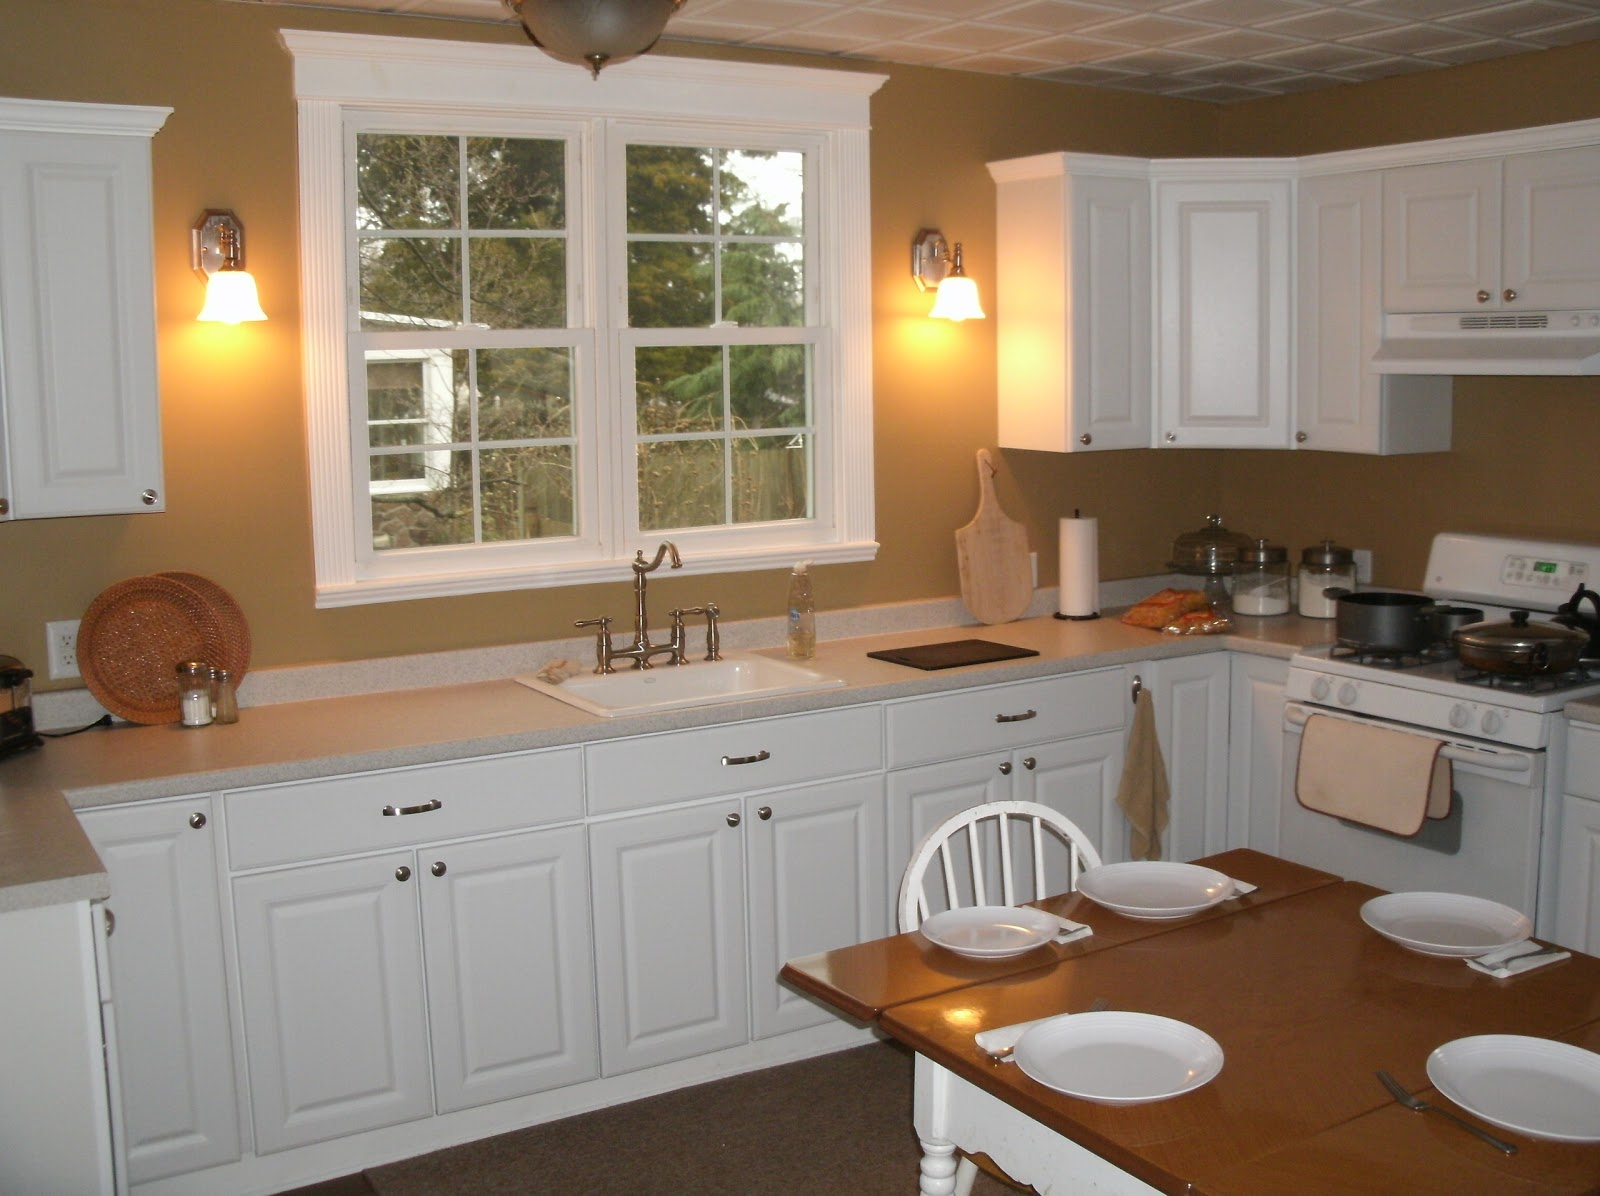 Home remodeling and improvements tips and how to 39 s for I kitchens and renovations